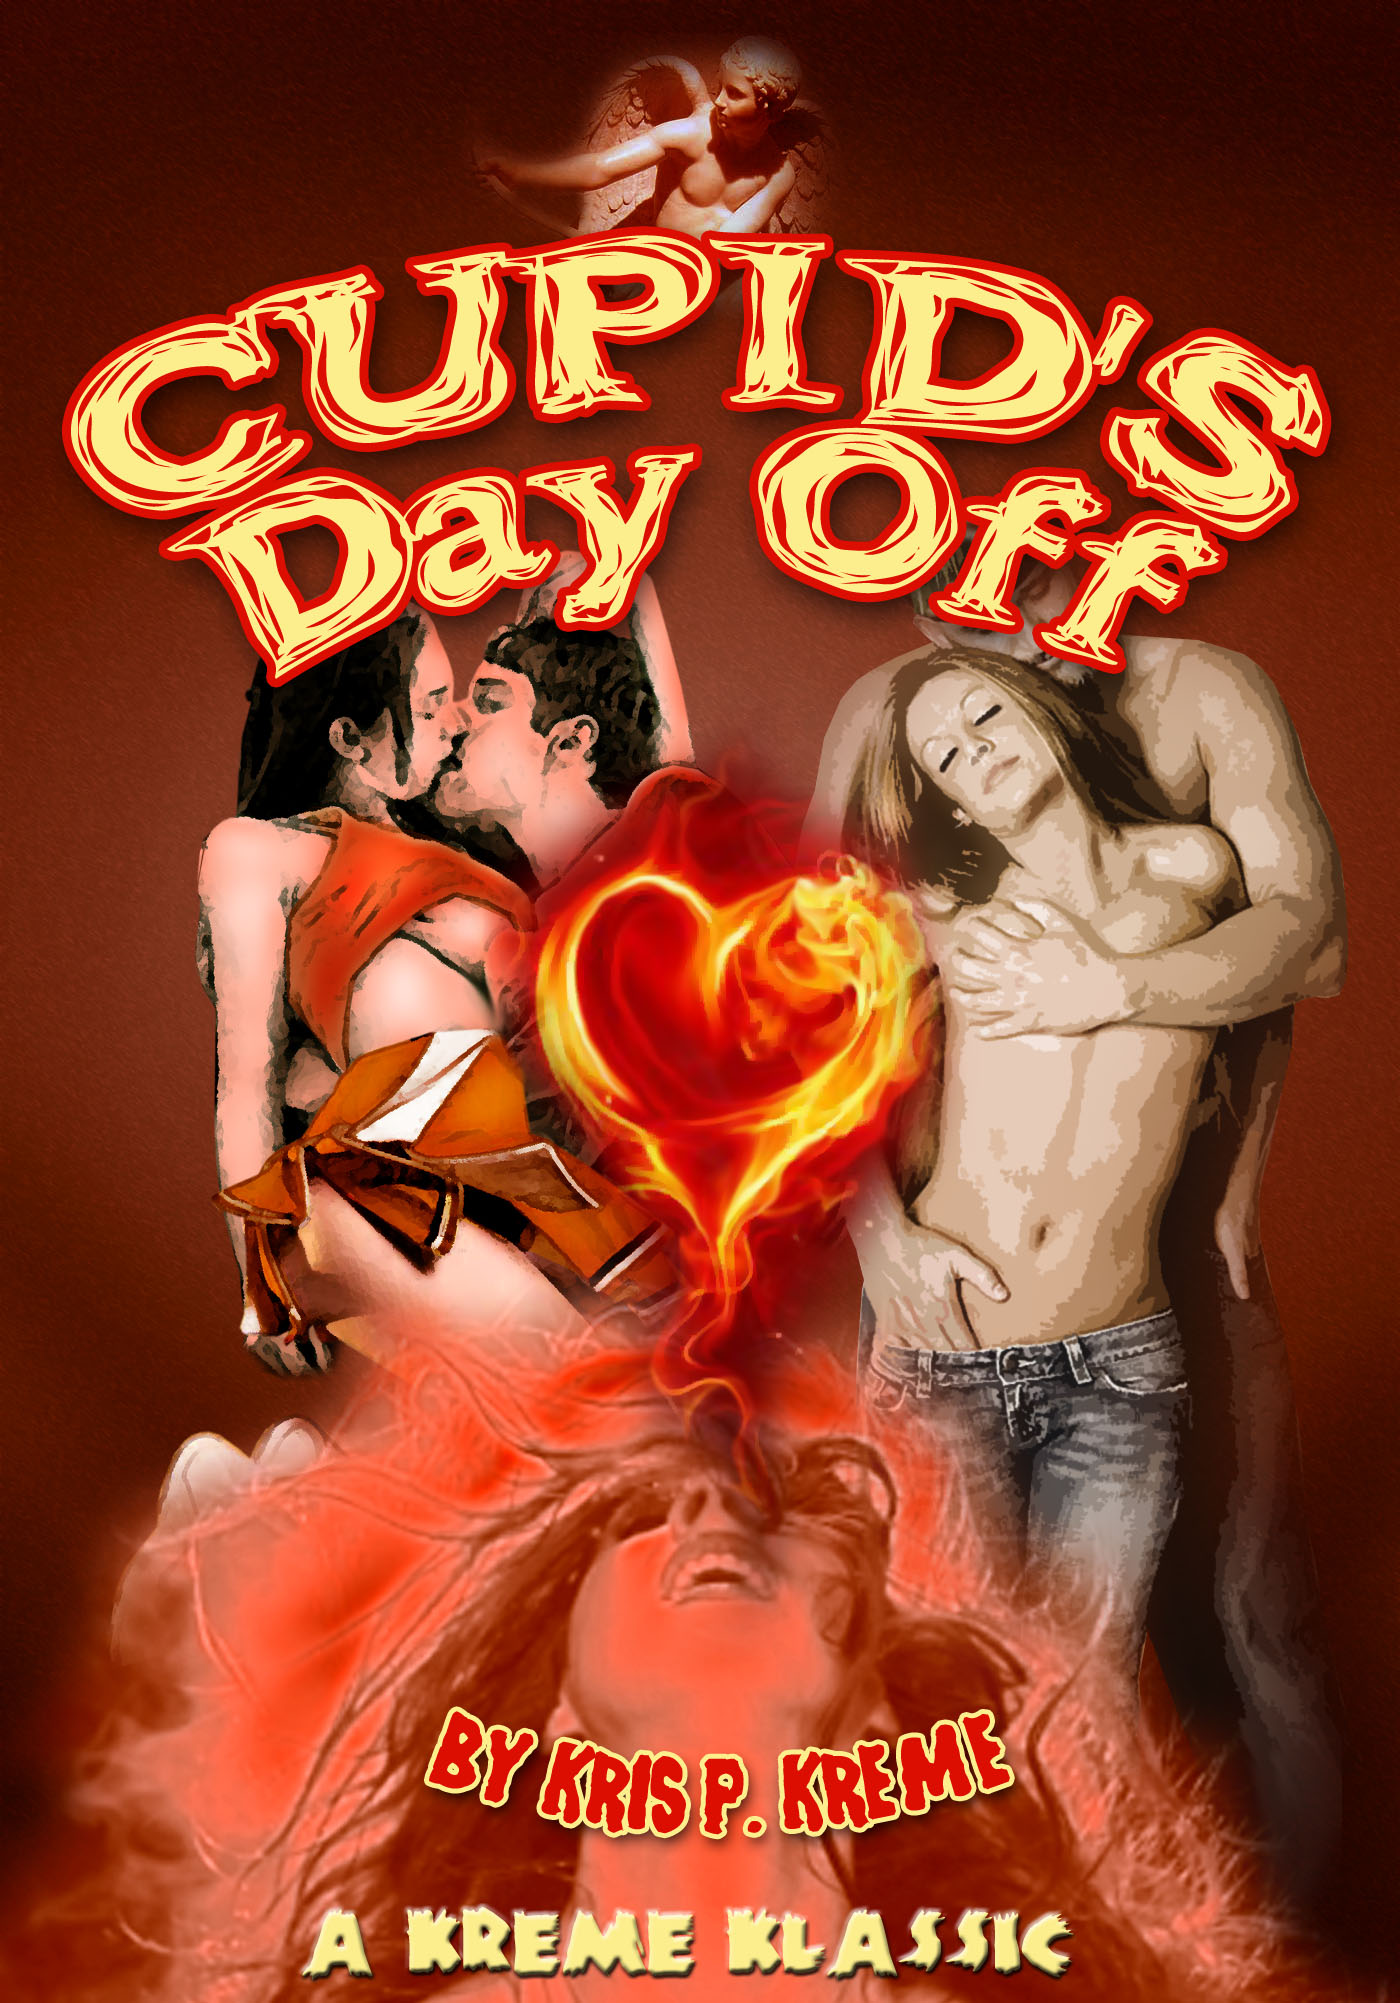 Cupid's Day Off by Kris P. Kreme